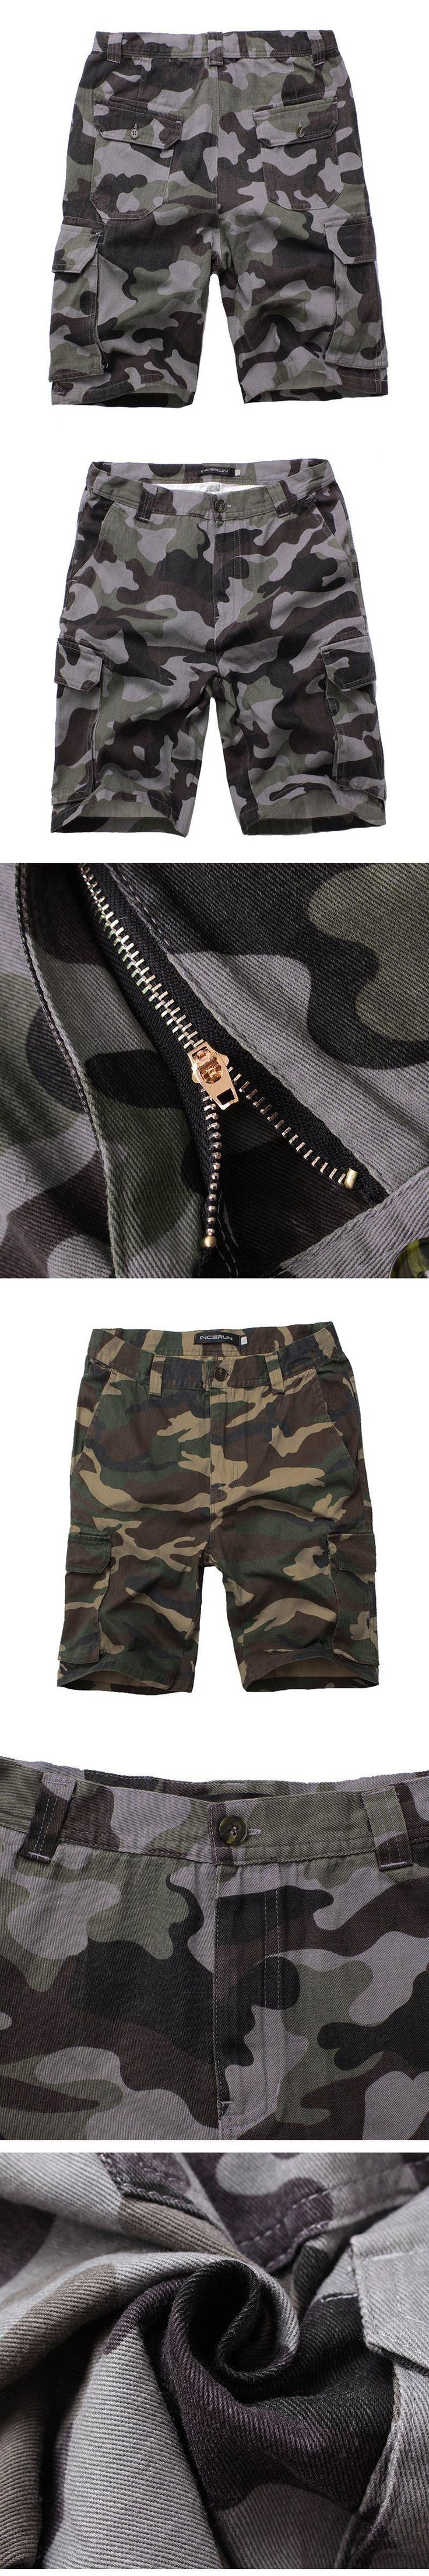 2017 New Cargo Shorts Men Casual Jogger Camouflage Brand Clothing Cotton Male Fashion Army Camo Work Shorts Men Plus Size 30-44